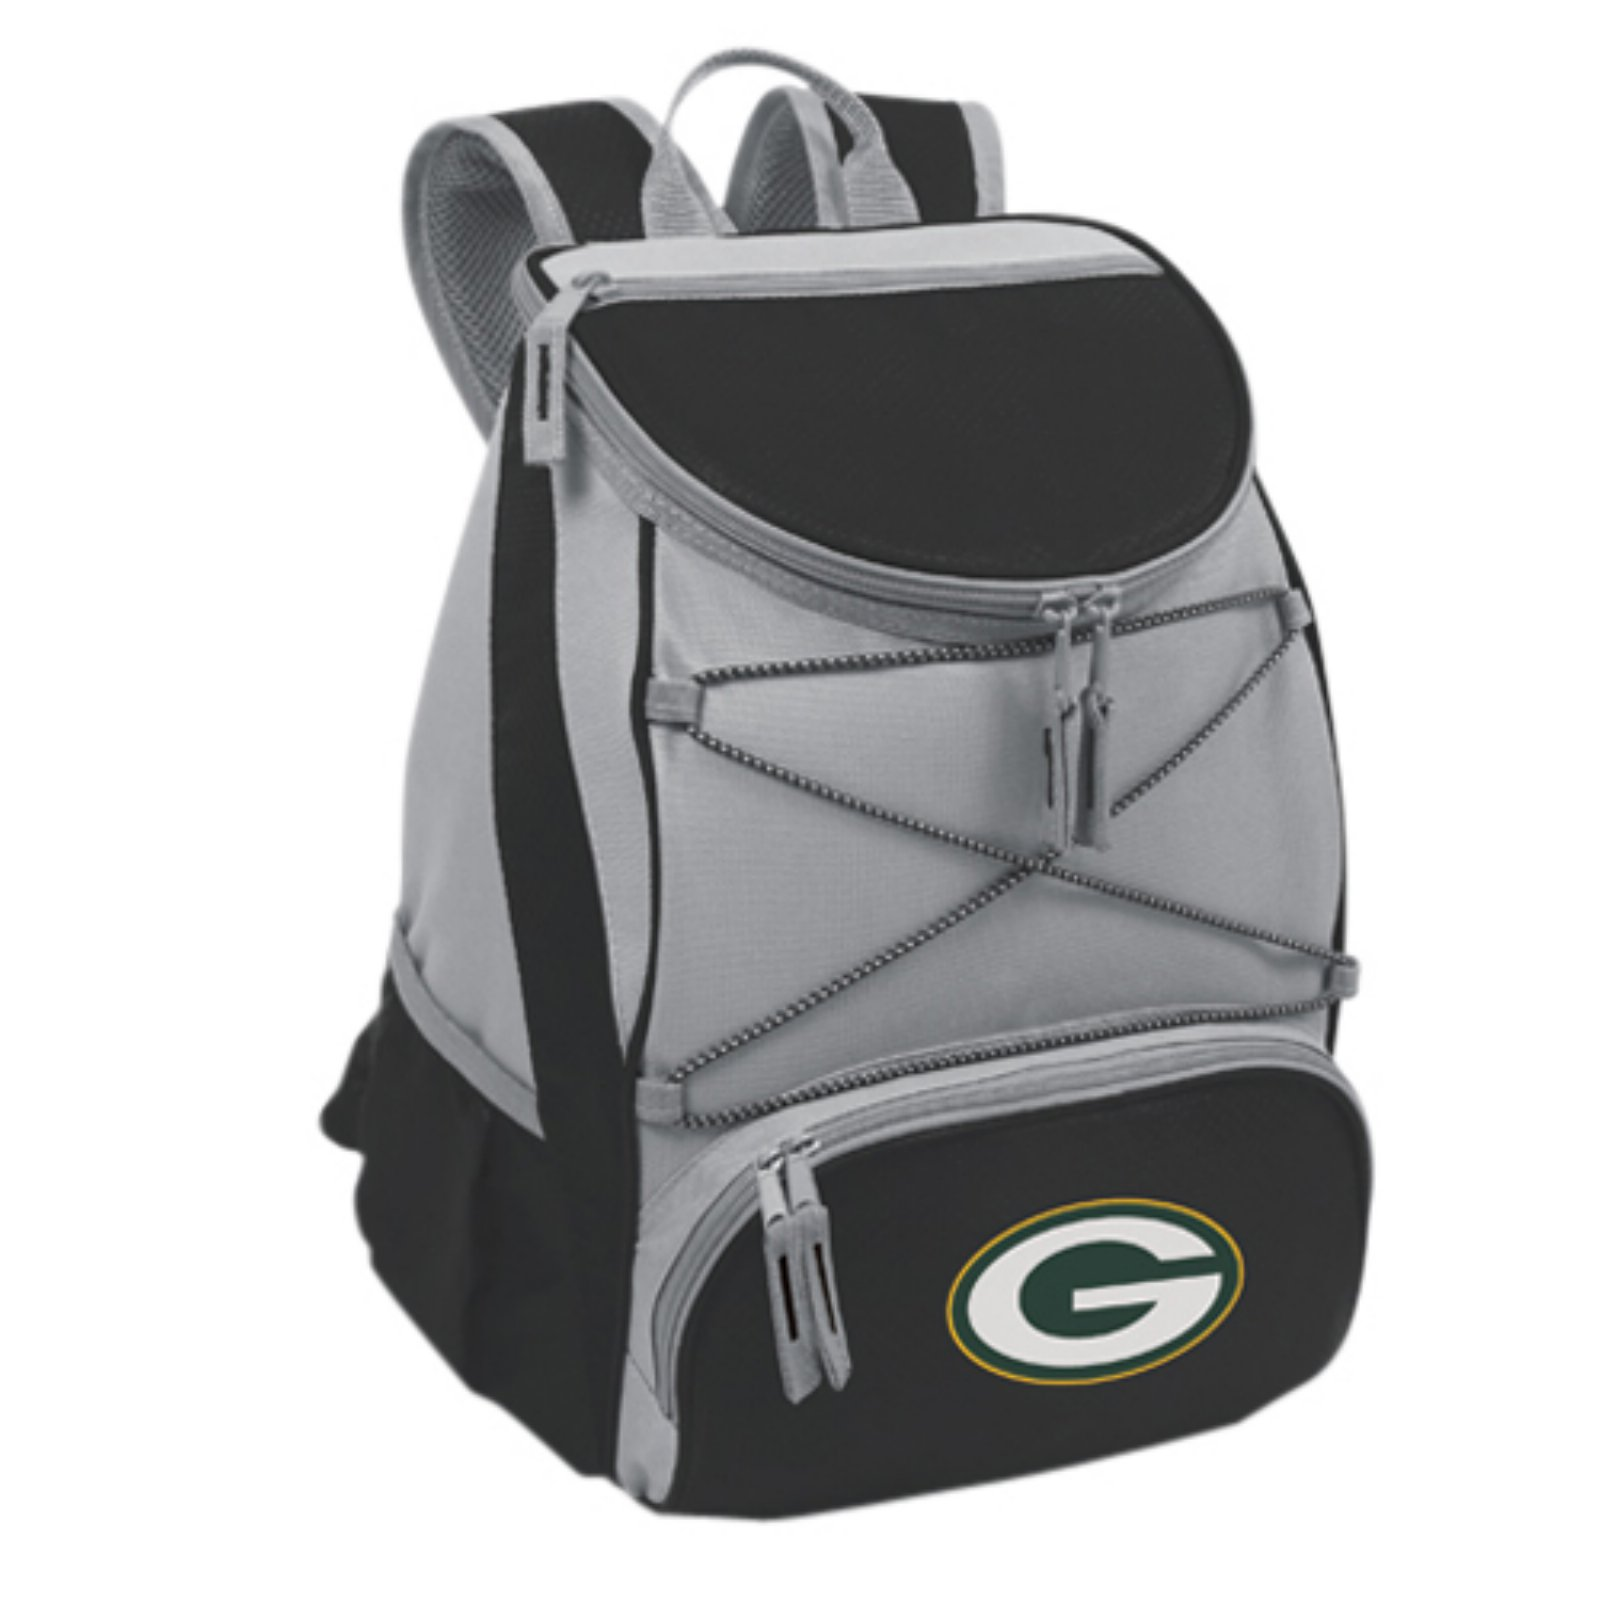 Picnic Time PTX Cooler, Black Green Bay Packers Digital Print